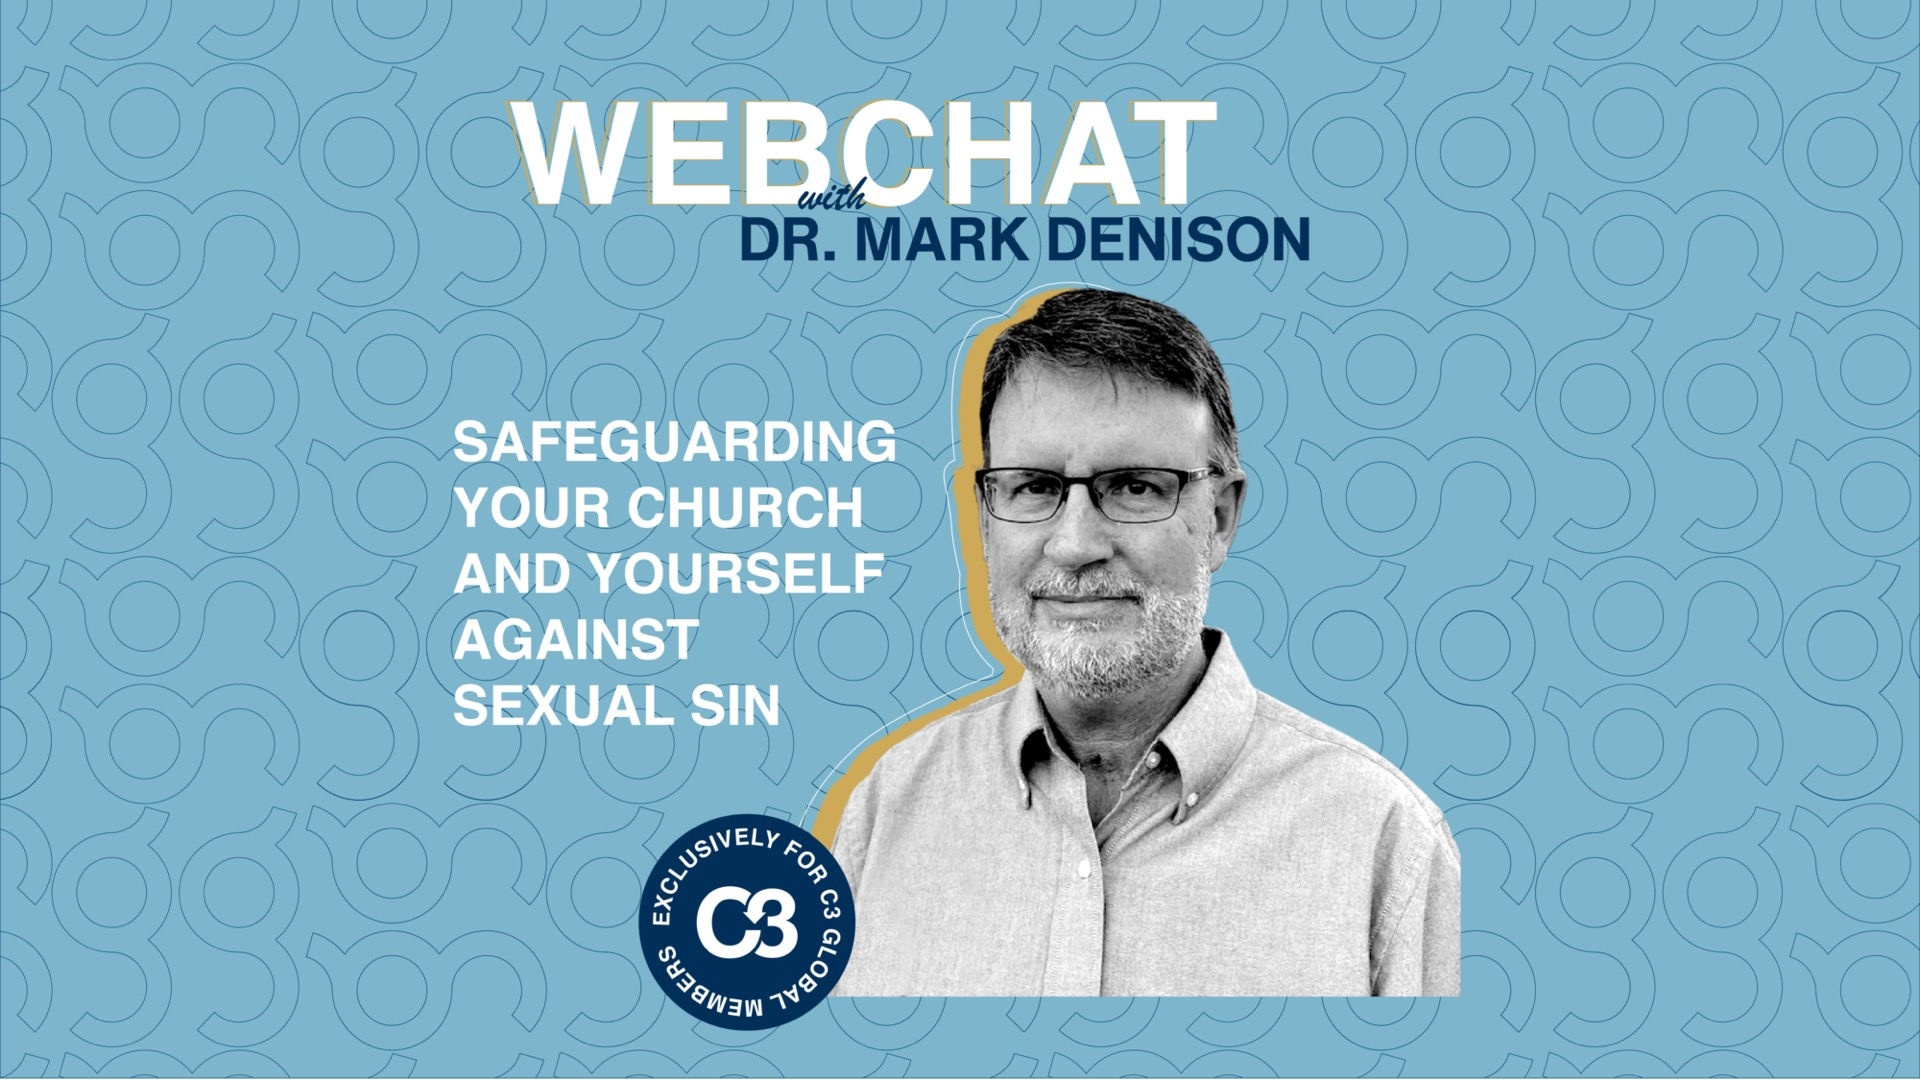 Safeguarding Your Church and Yourself Against Sexual Sin